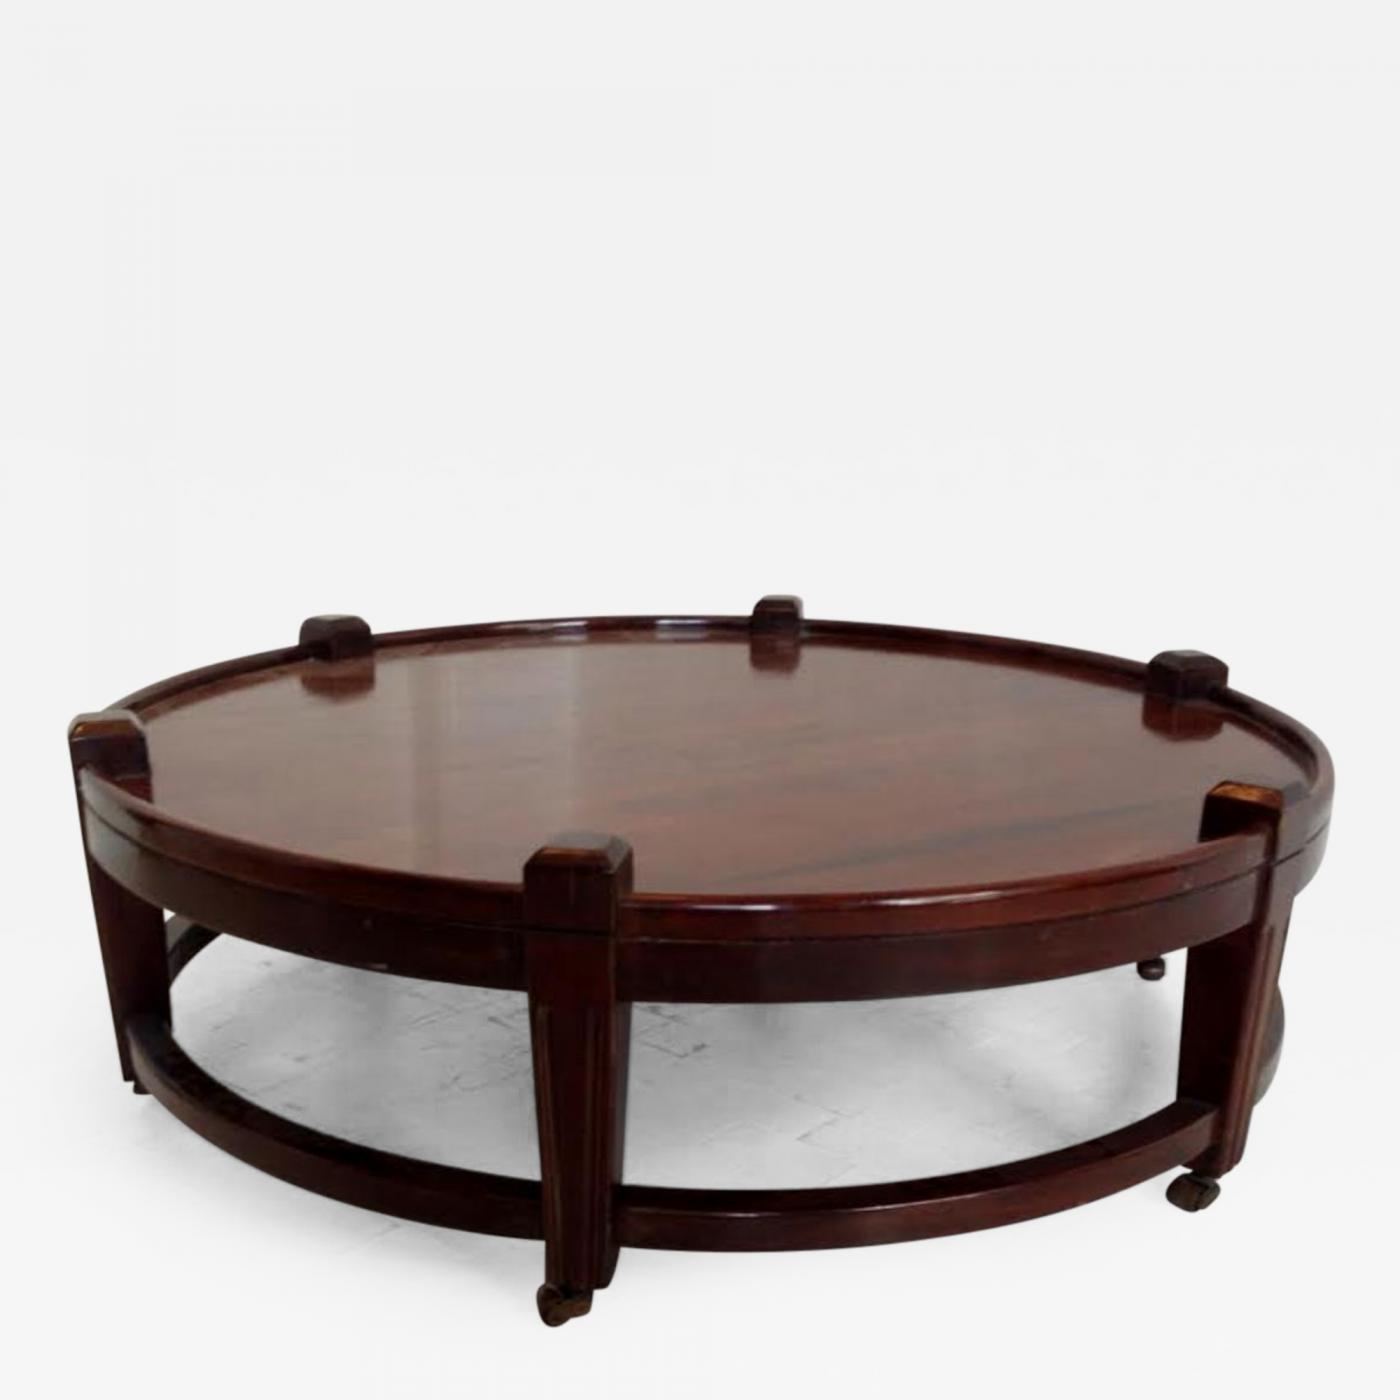 - Post War Large Round Coffee Table On Wheels